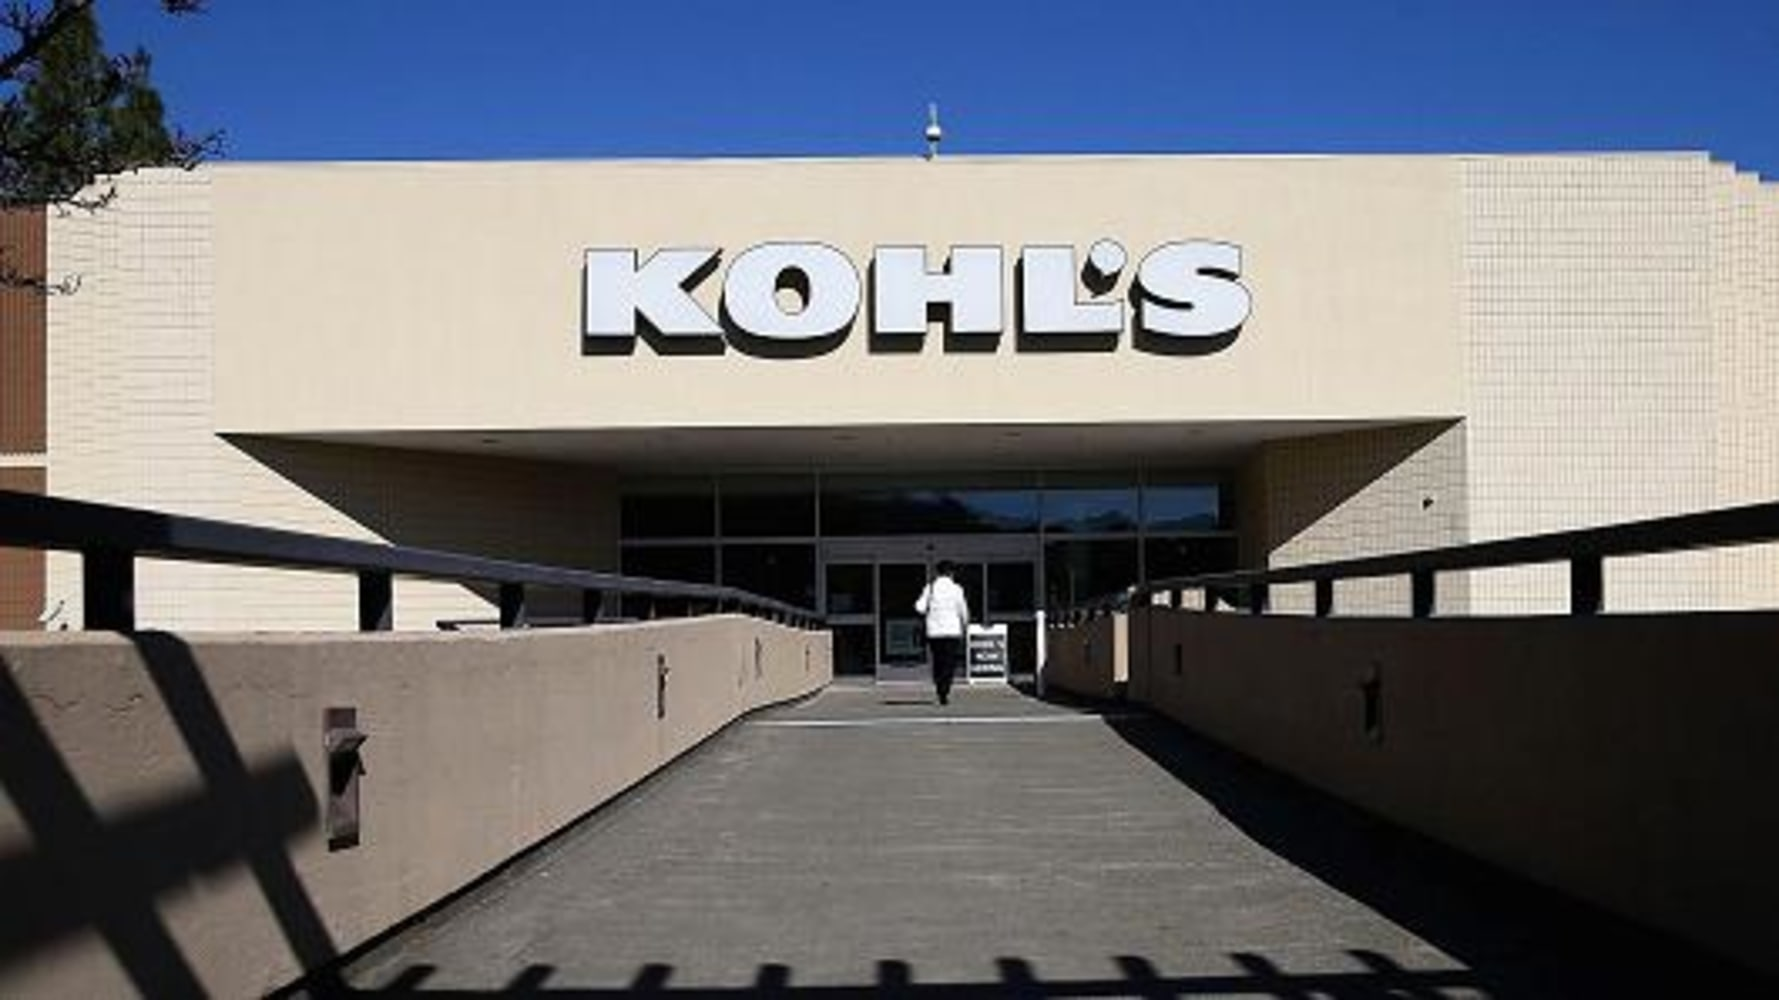 What Time Does Kohl's Open? Kohls hours for opening remain pretty much the same throughout the entire week. Every day except Saturdays will see Kohl's hours begin at 9am, as Saturdays begin slightly earlier at 8am. What Time Does Kohl's Close? Kohl's hours .